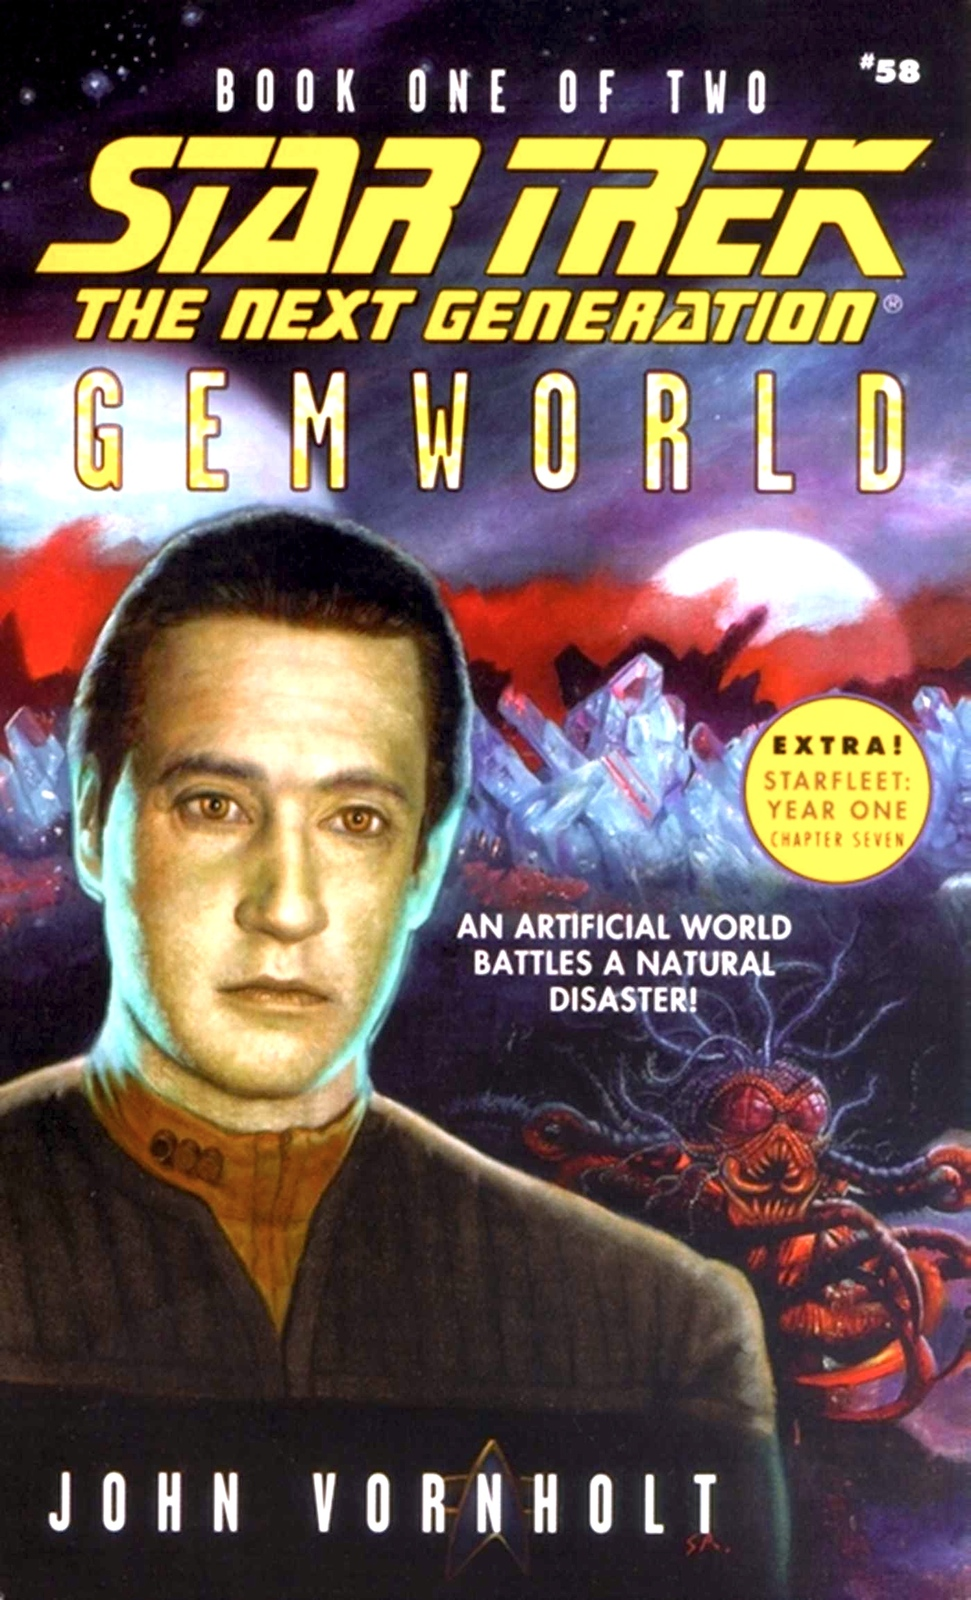 File:Gemworld1.jpg